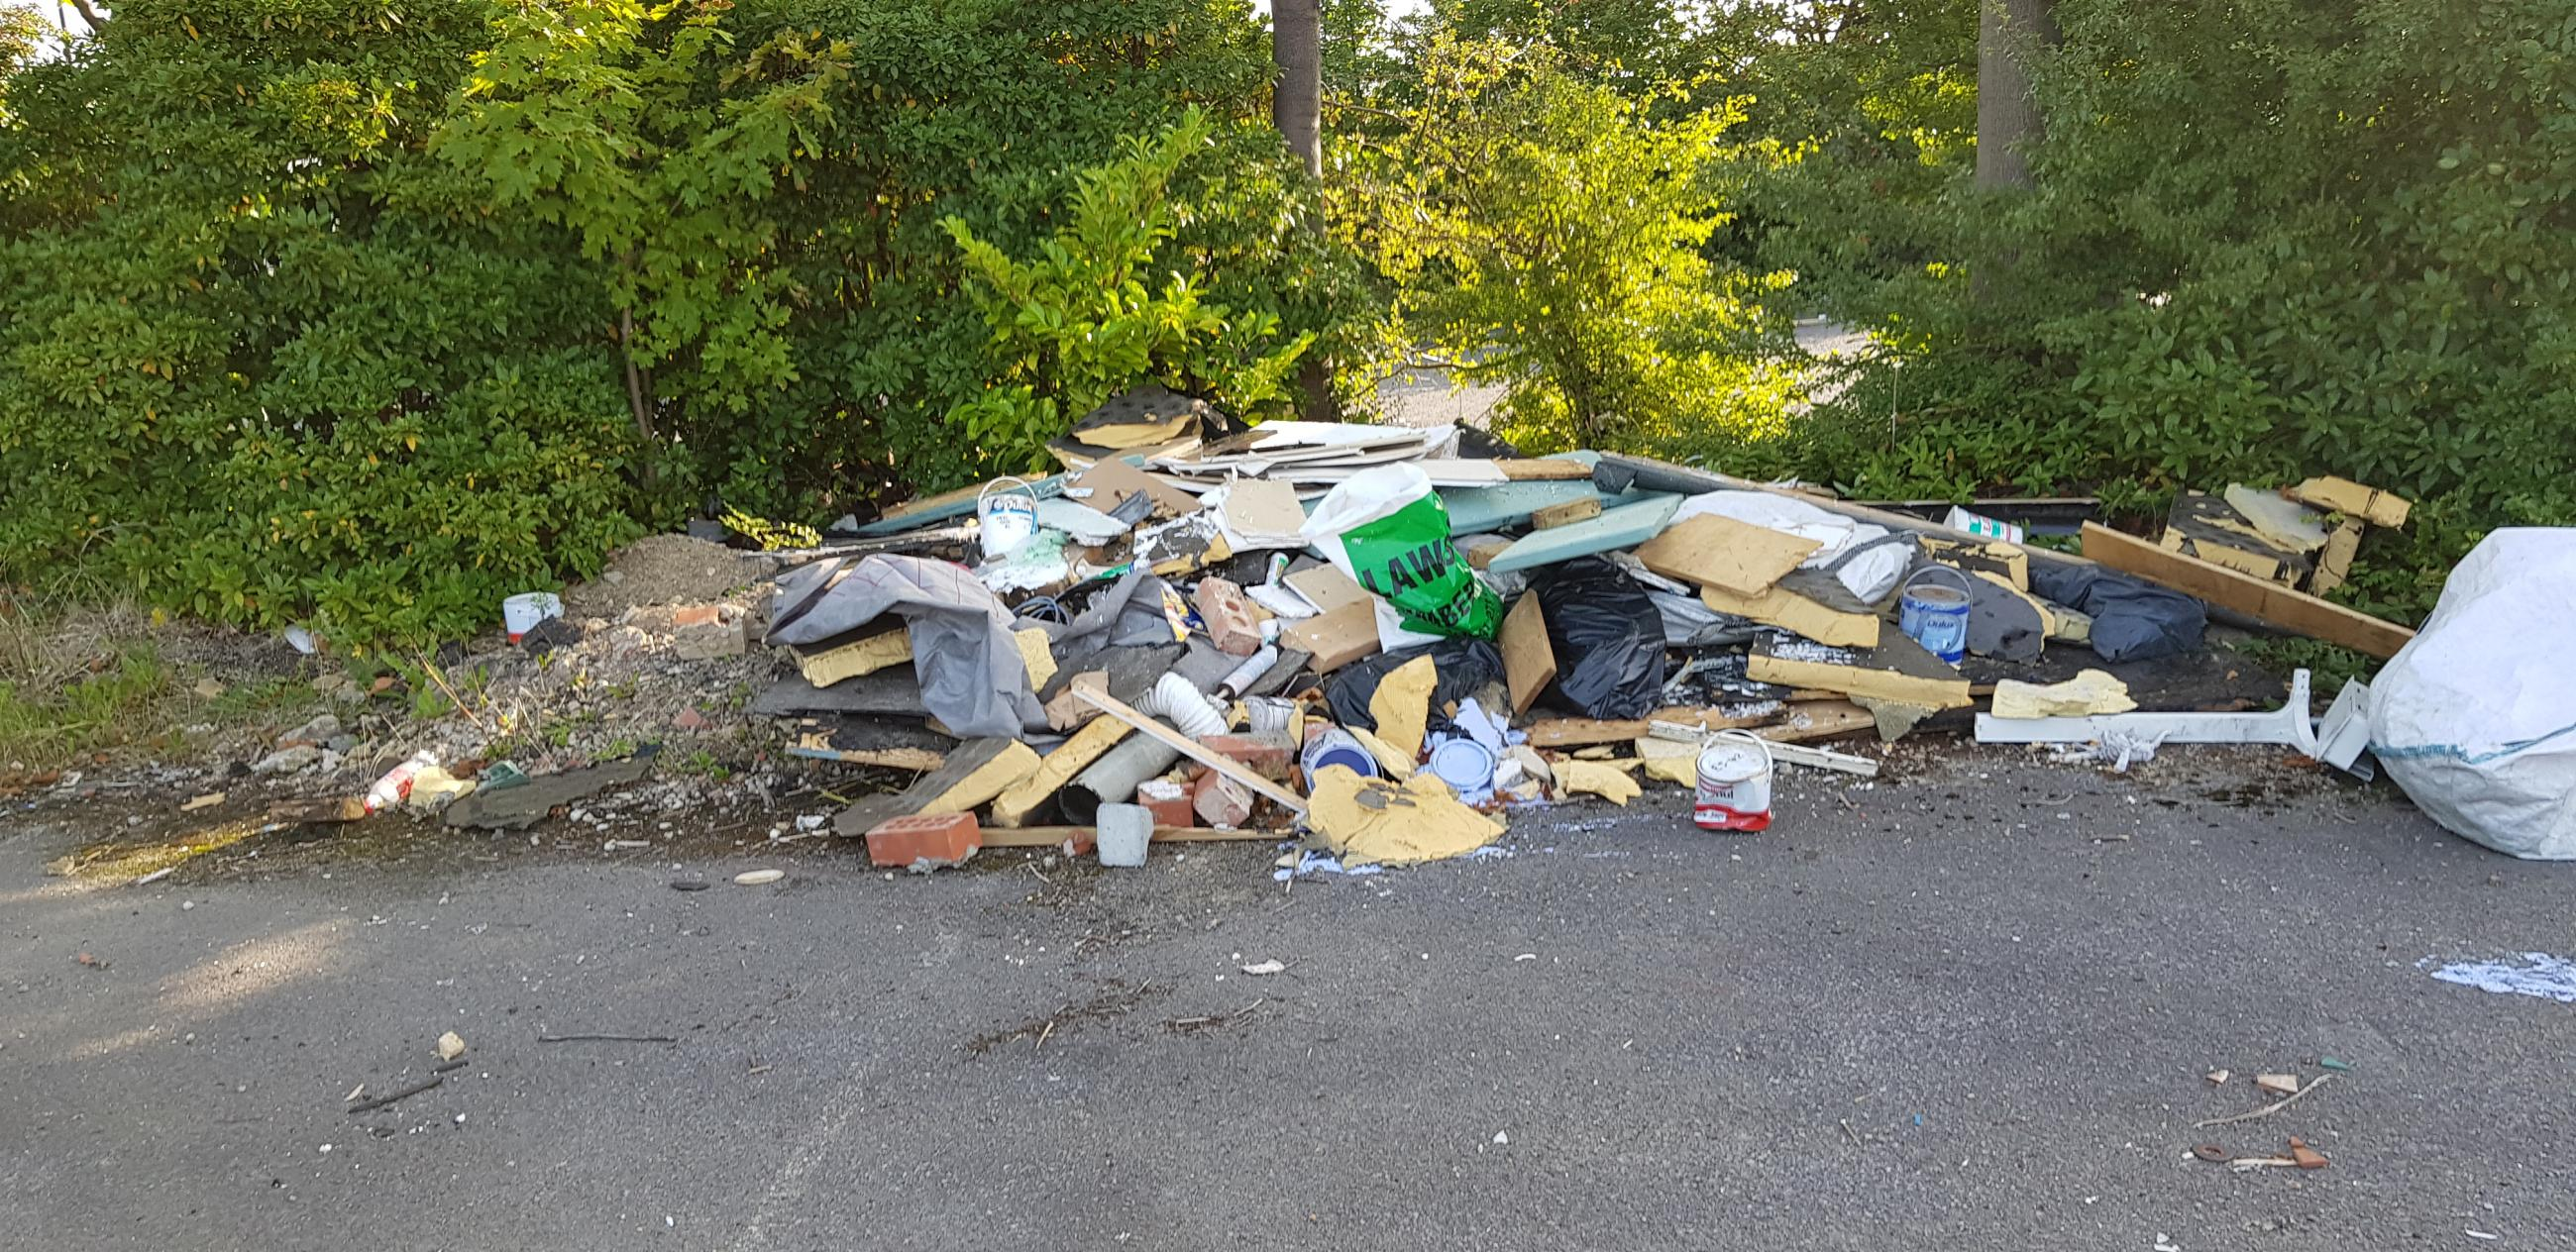 Fly-tipped waste traced back to Mair's business